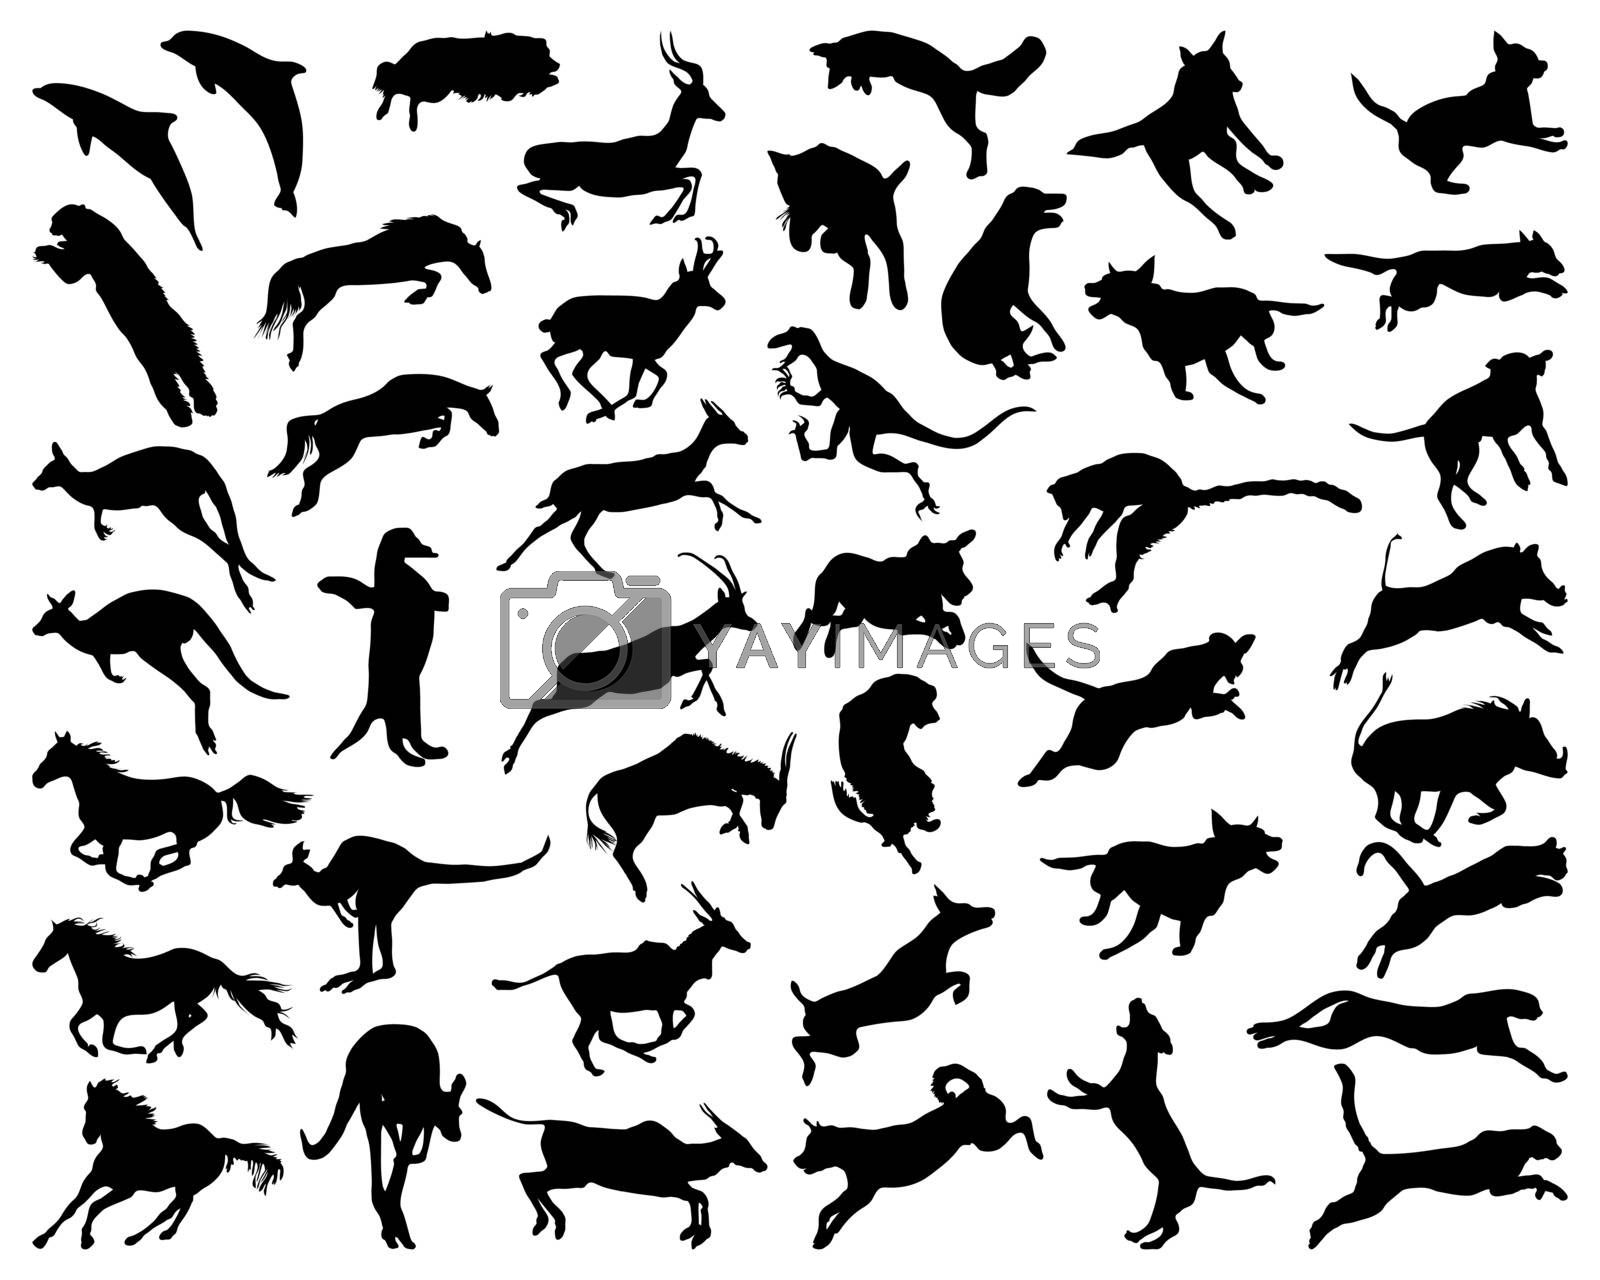 Black silhouettes of animals in a jump on a white background